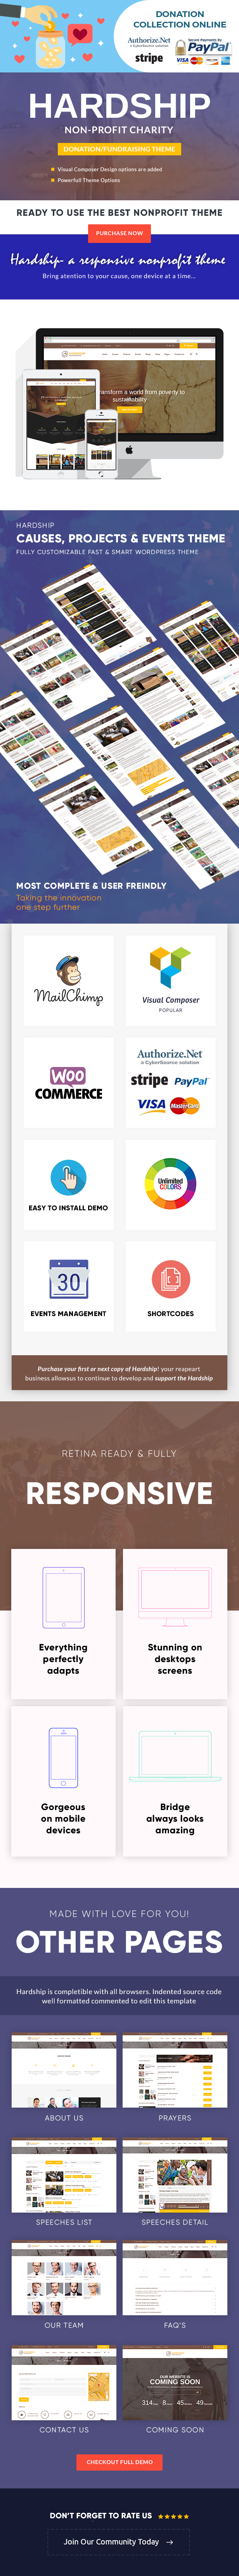 Hardship Charity Donation | Nonprofit / Fundraising WordPress Theme